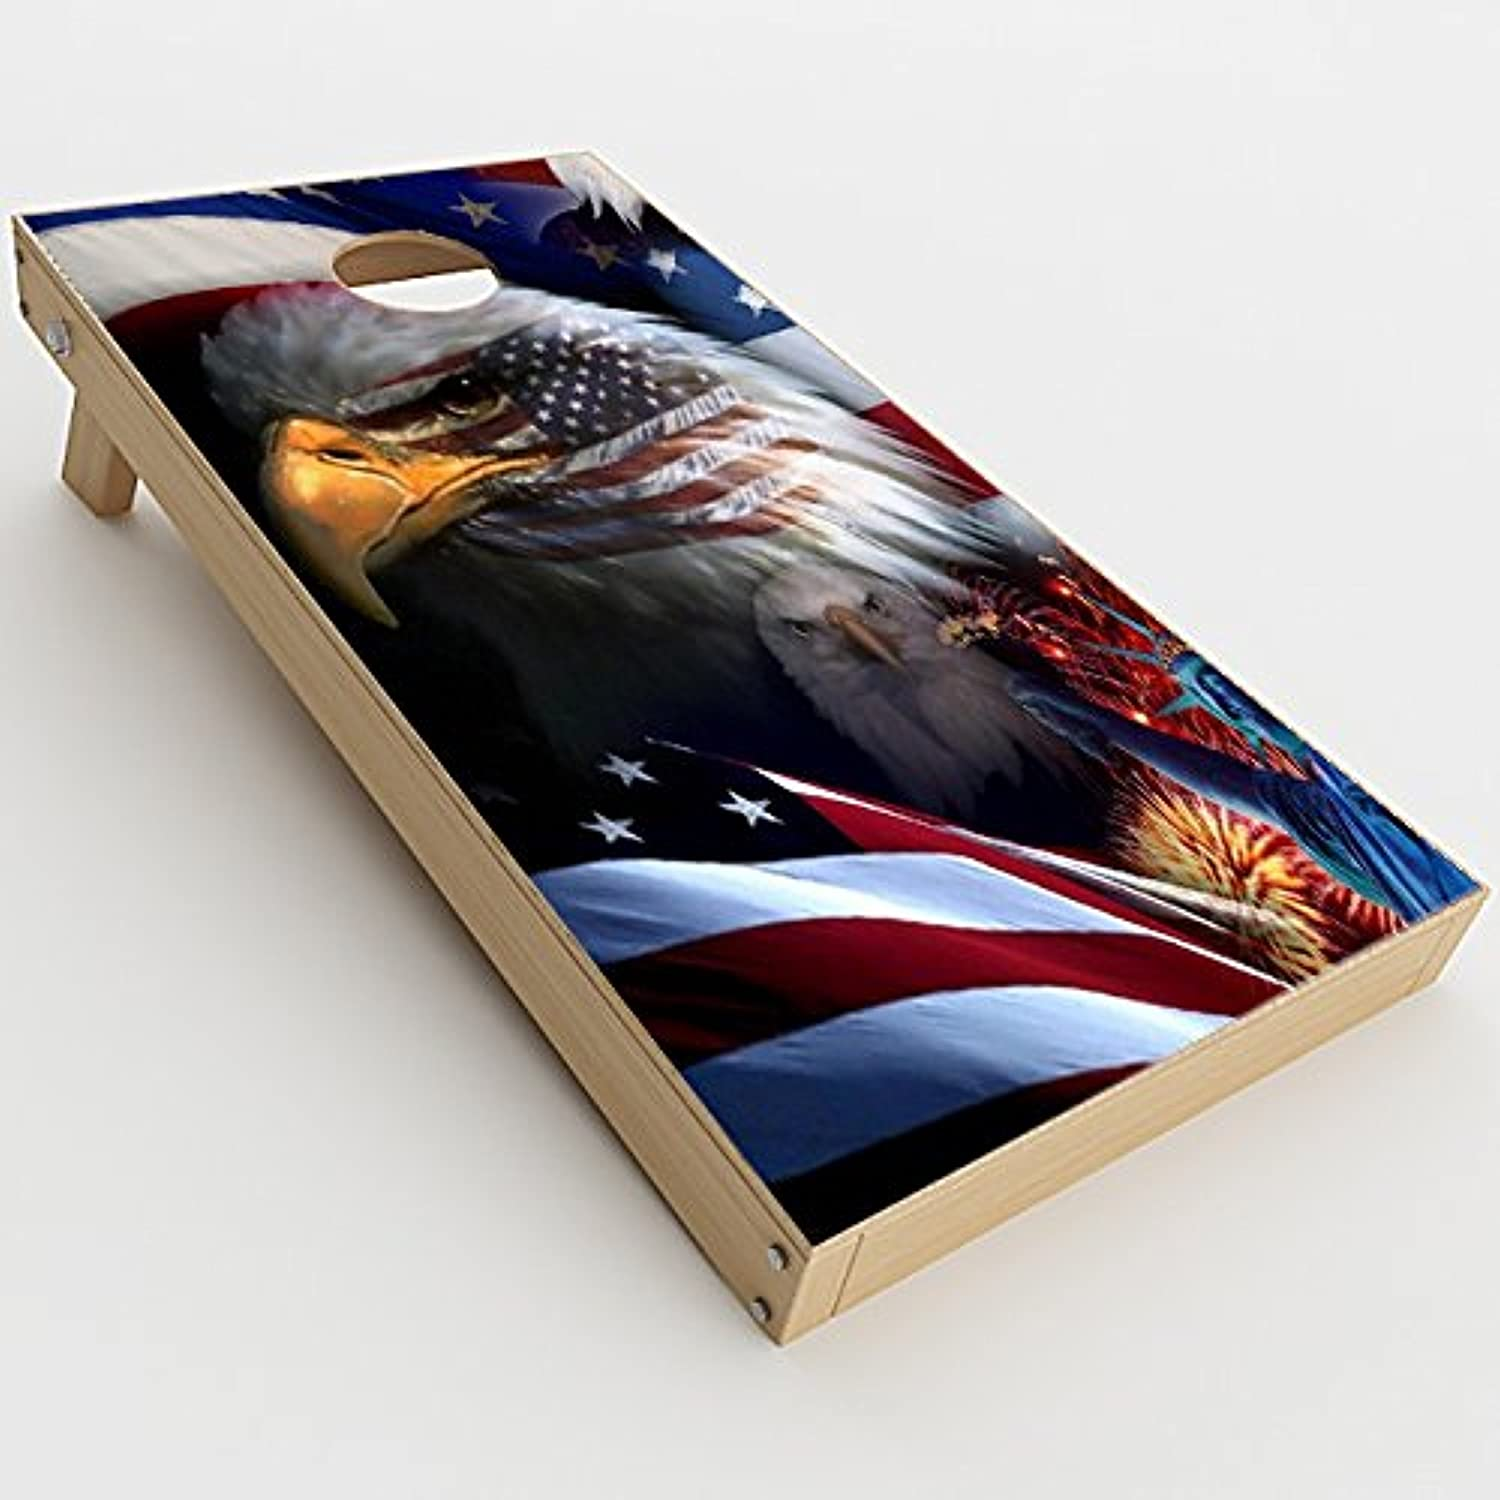 Skin 2021new shipping free Decals Vinyl Wrap for Cornhole Bag Toss Board Manufacturer OFFicial shop 2xpcs. Game